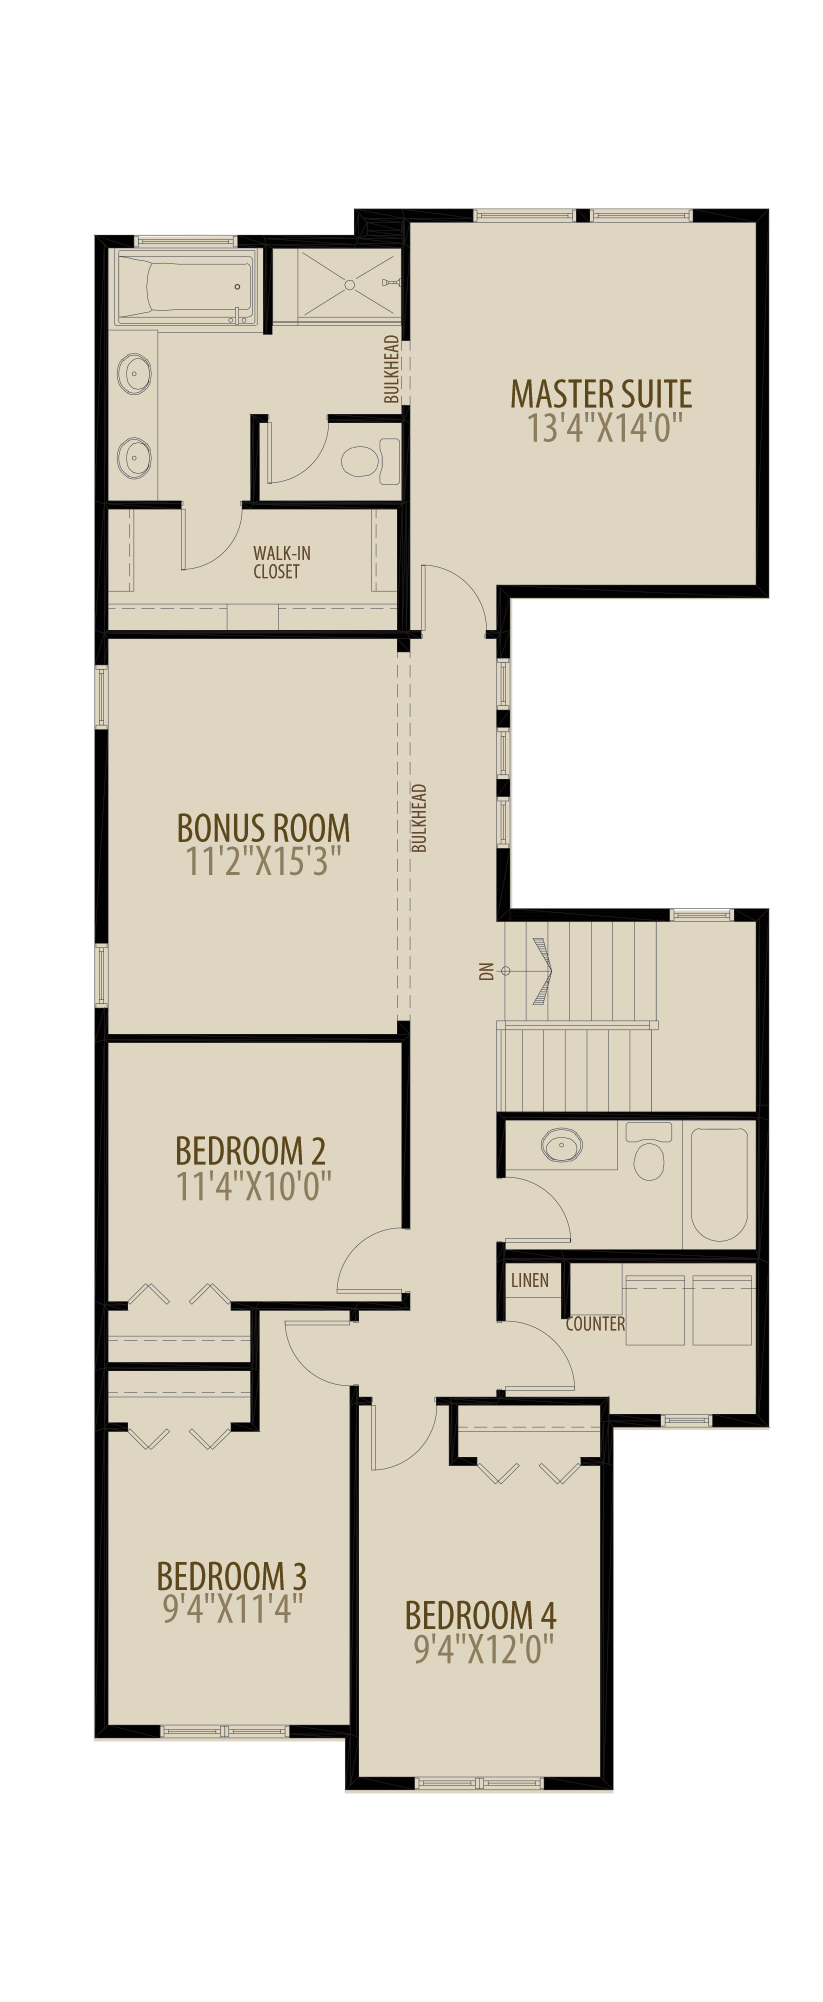 Optional 4th Bedroom adds 132 sq ft